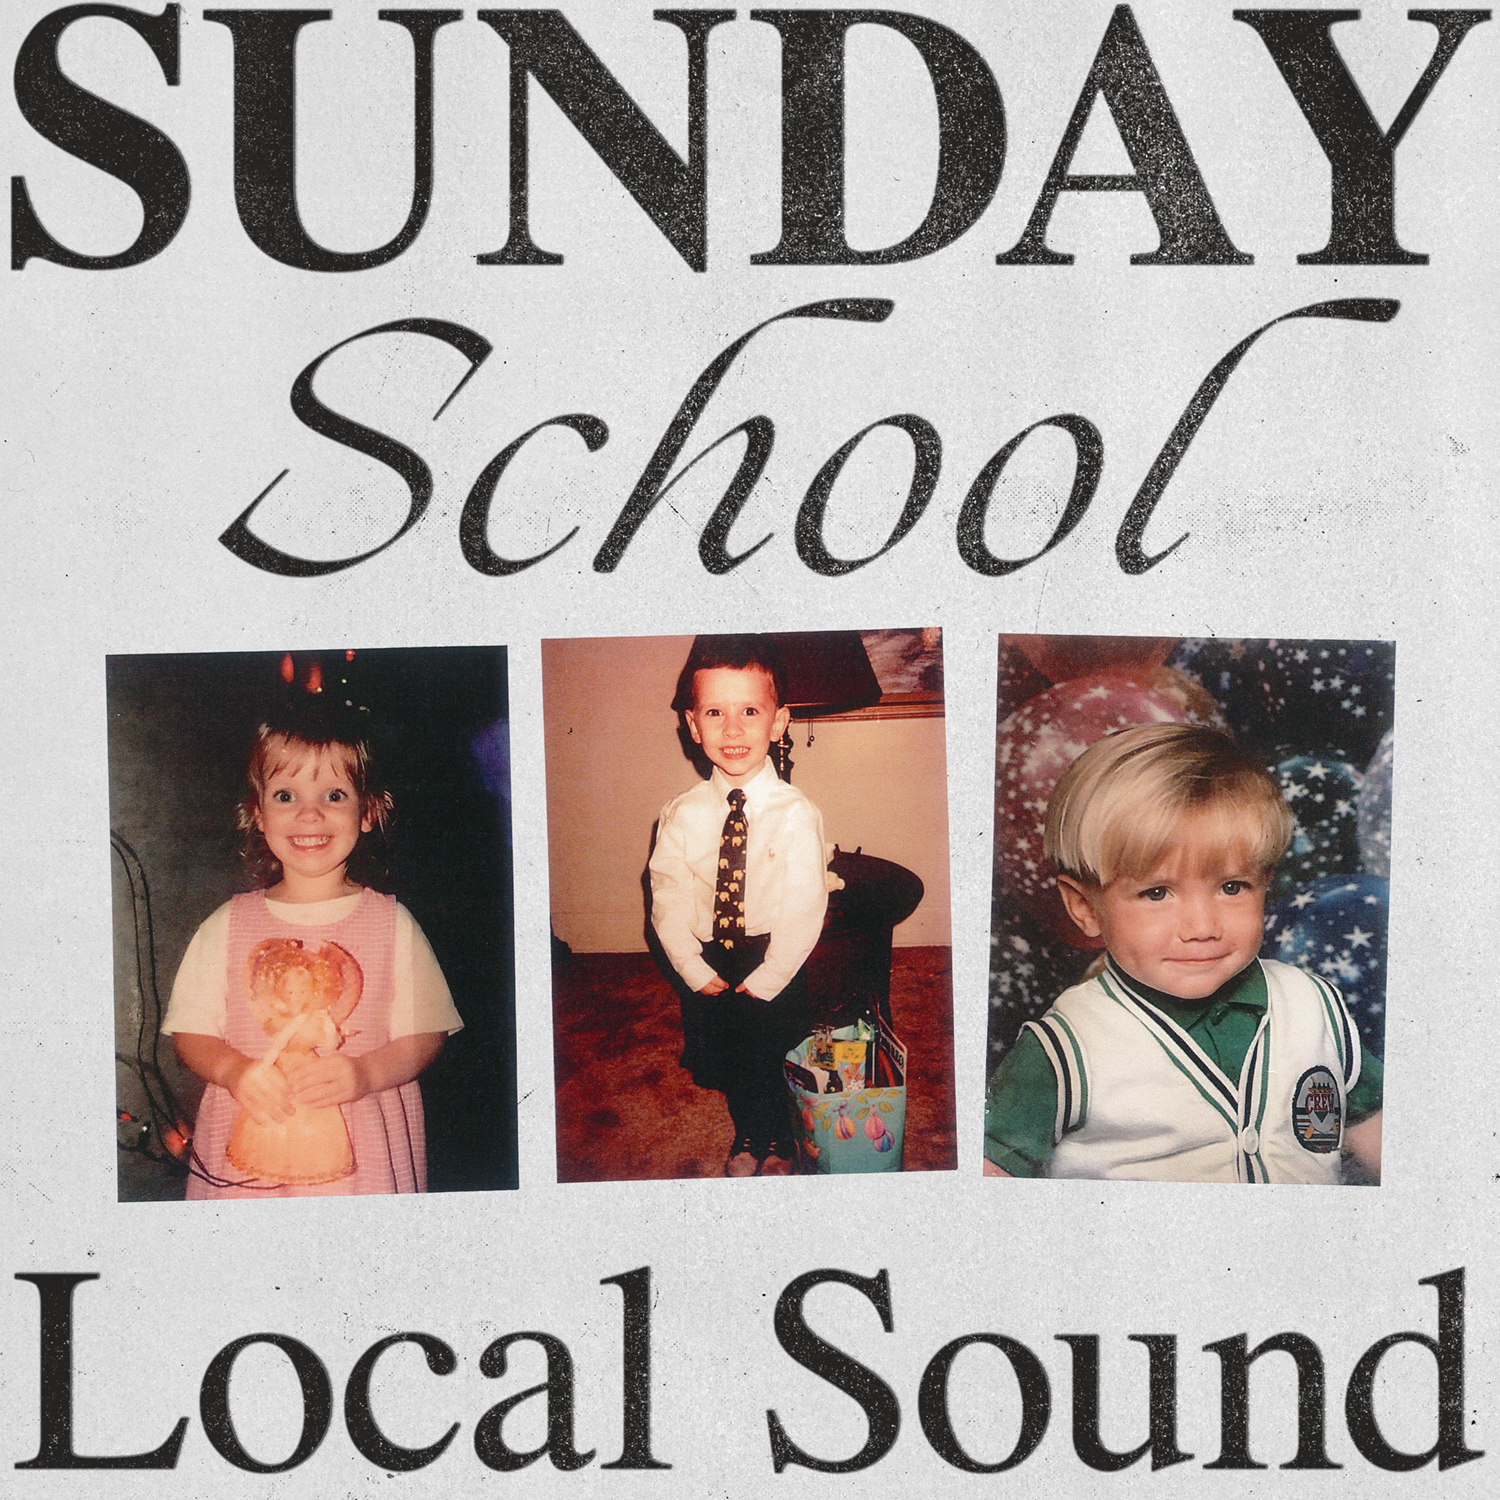 Local Sound - Sunday School Artwork